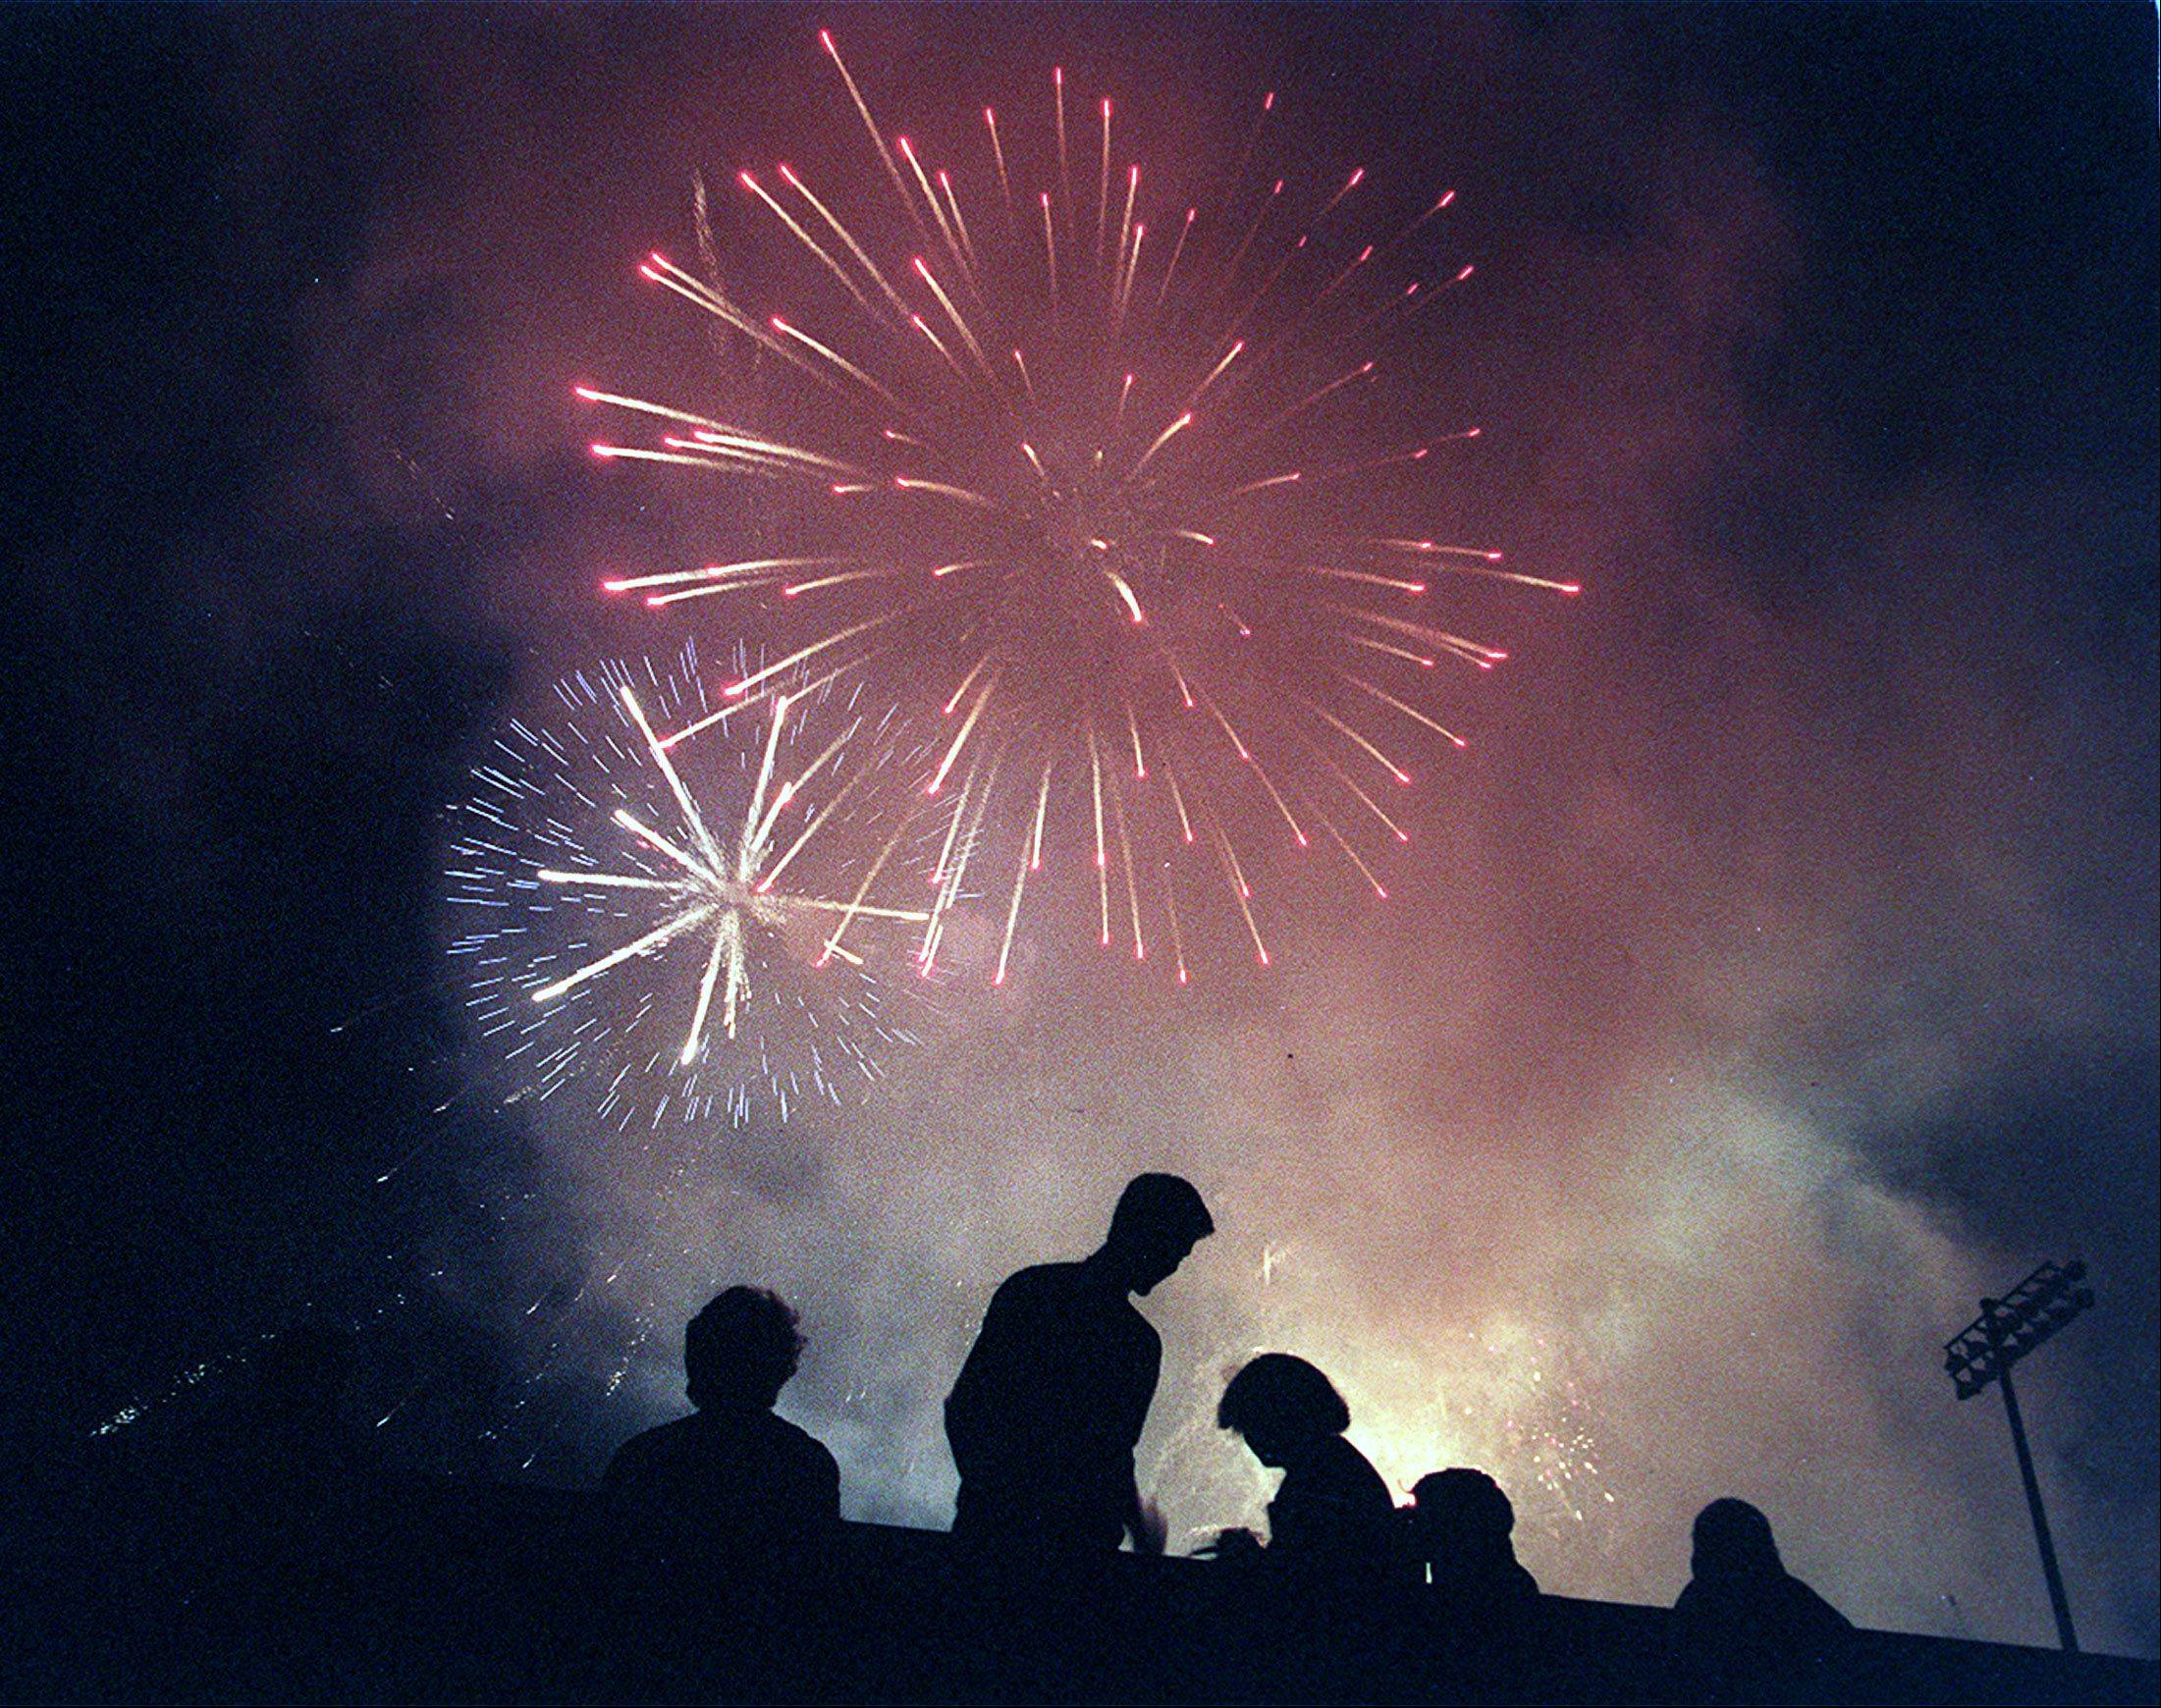 The Illinois Department of Natural Resources is reminding organizations sponsoring fireworks shows to make sure their vendors have the right licenses and certificates.